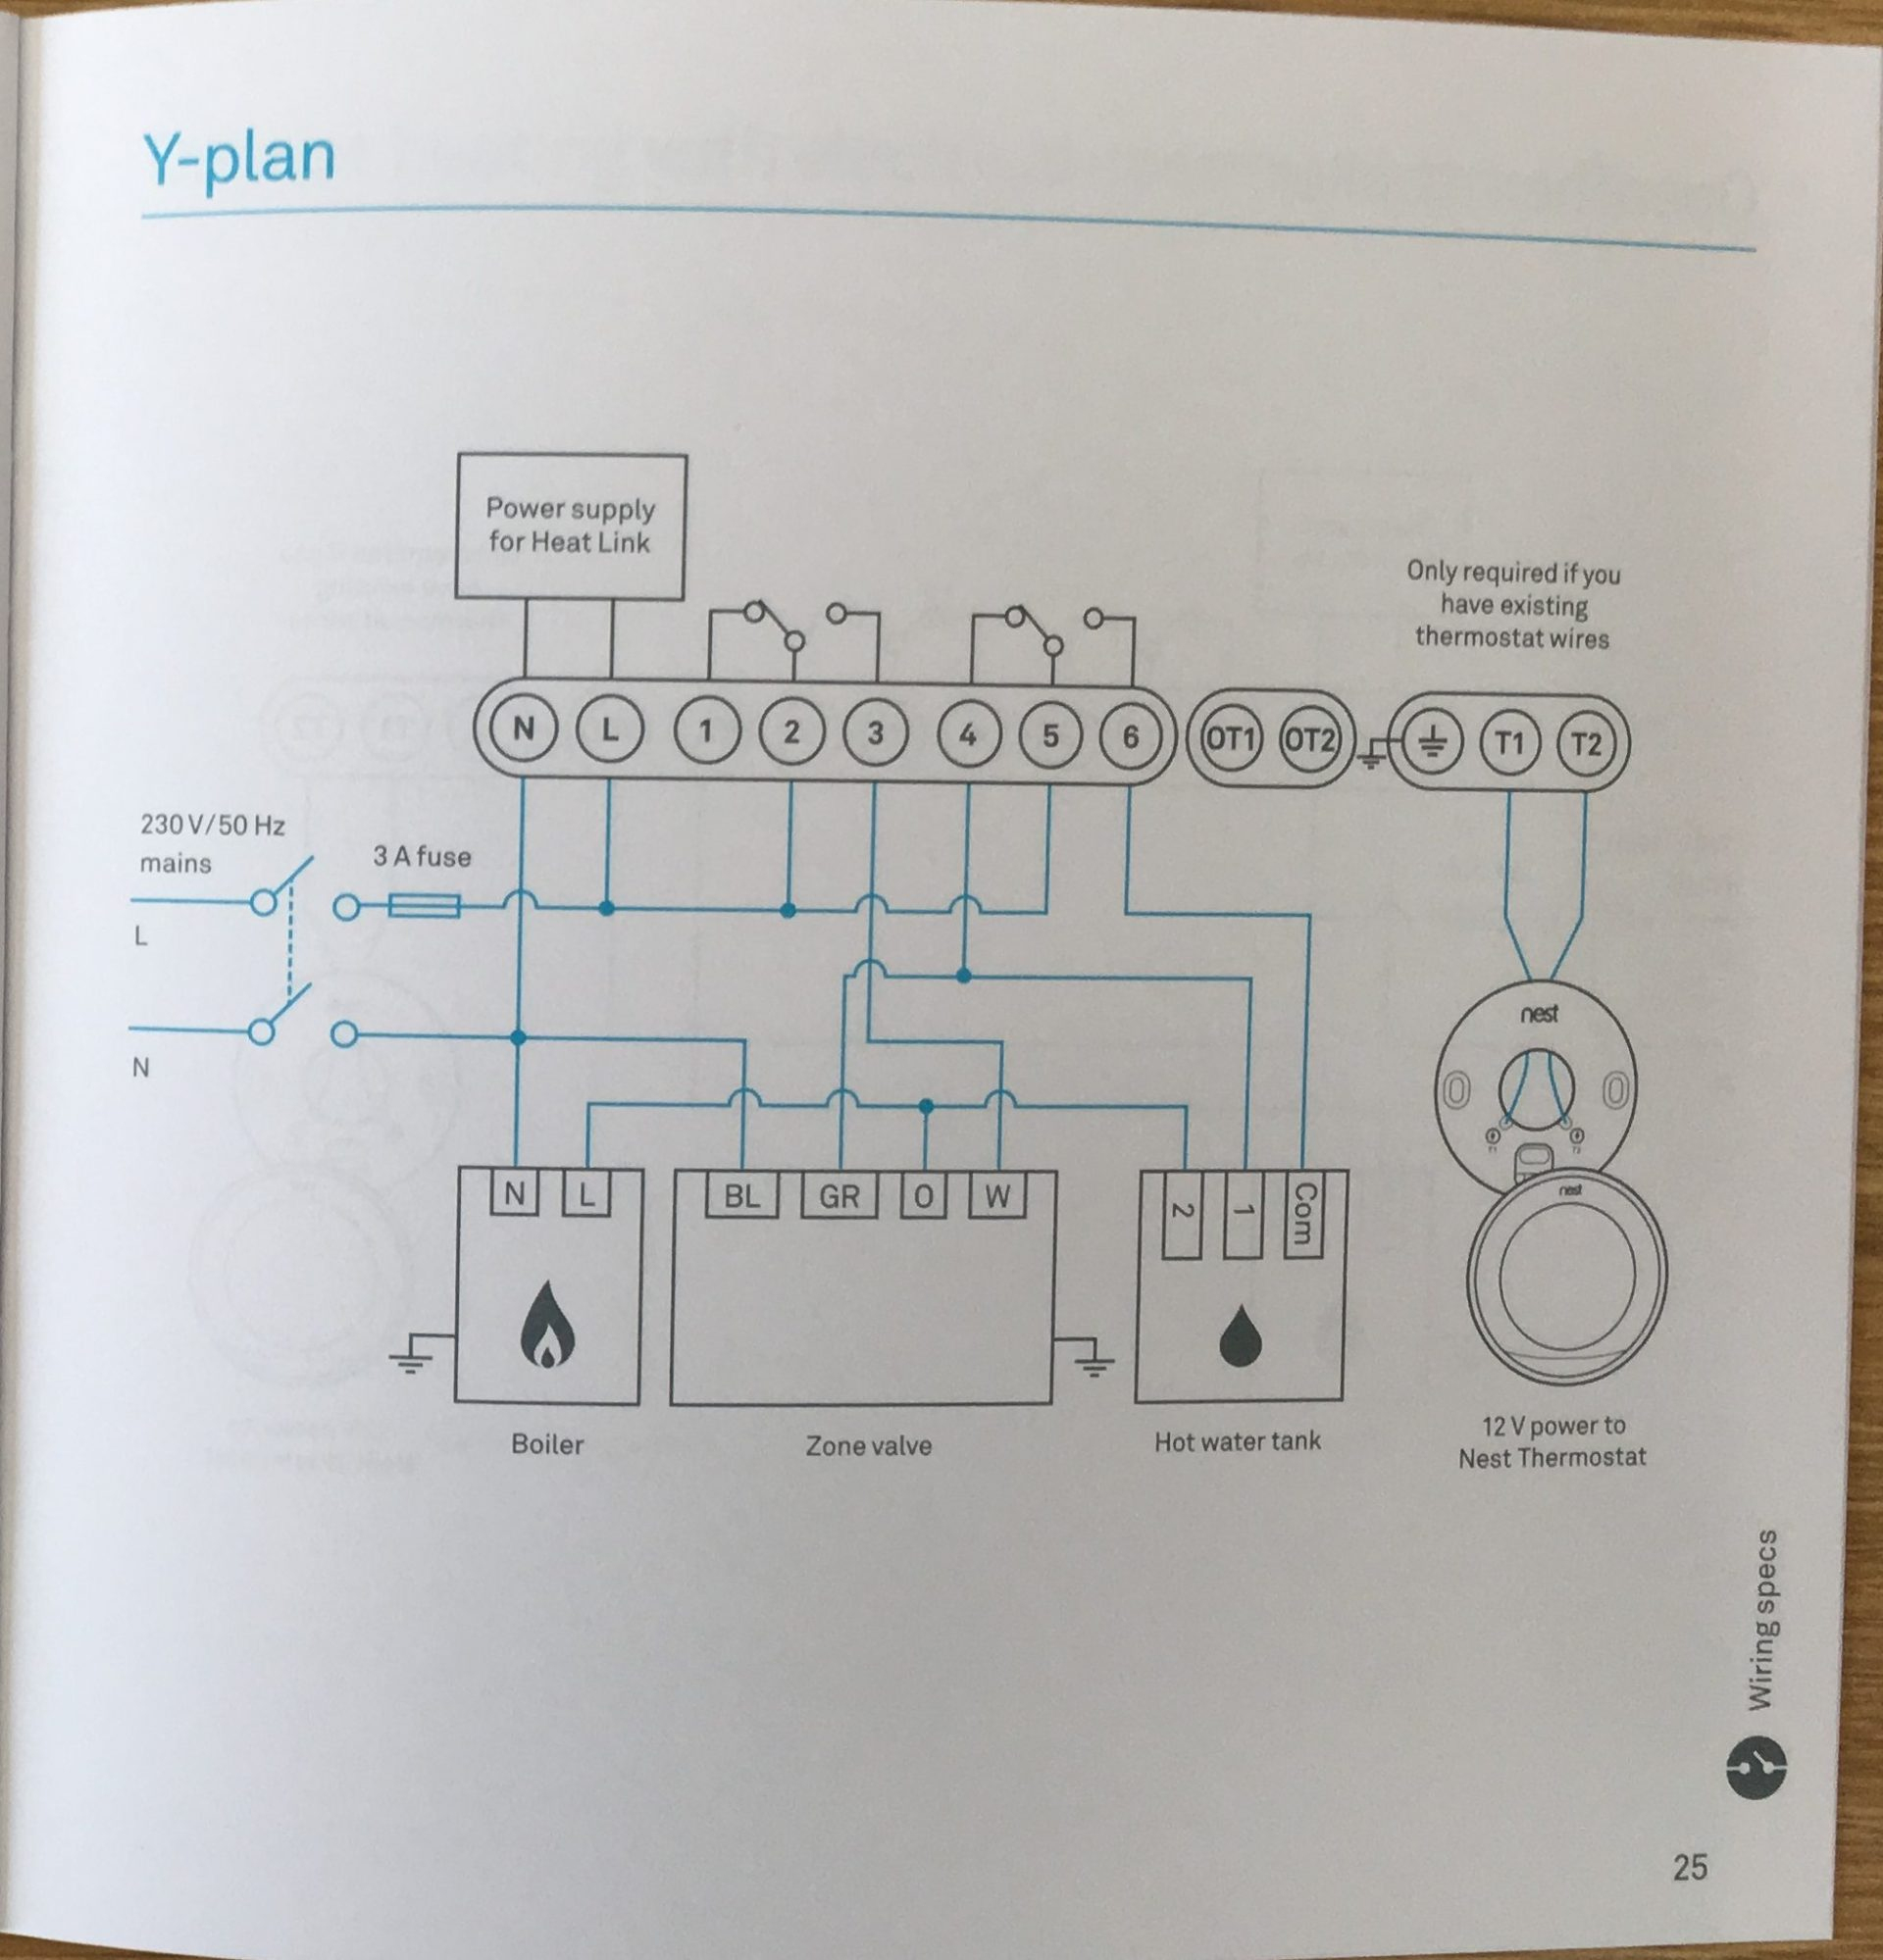 How To Install The Nest Learning Thermostat (3Rd Gen) In A Y-Plan - Nest Programmer Wiring Diagram